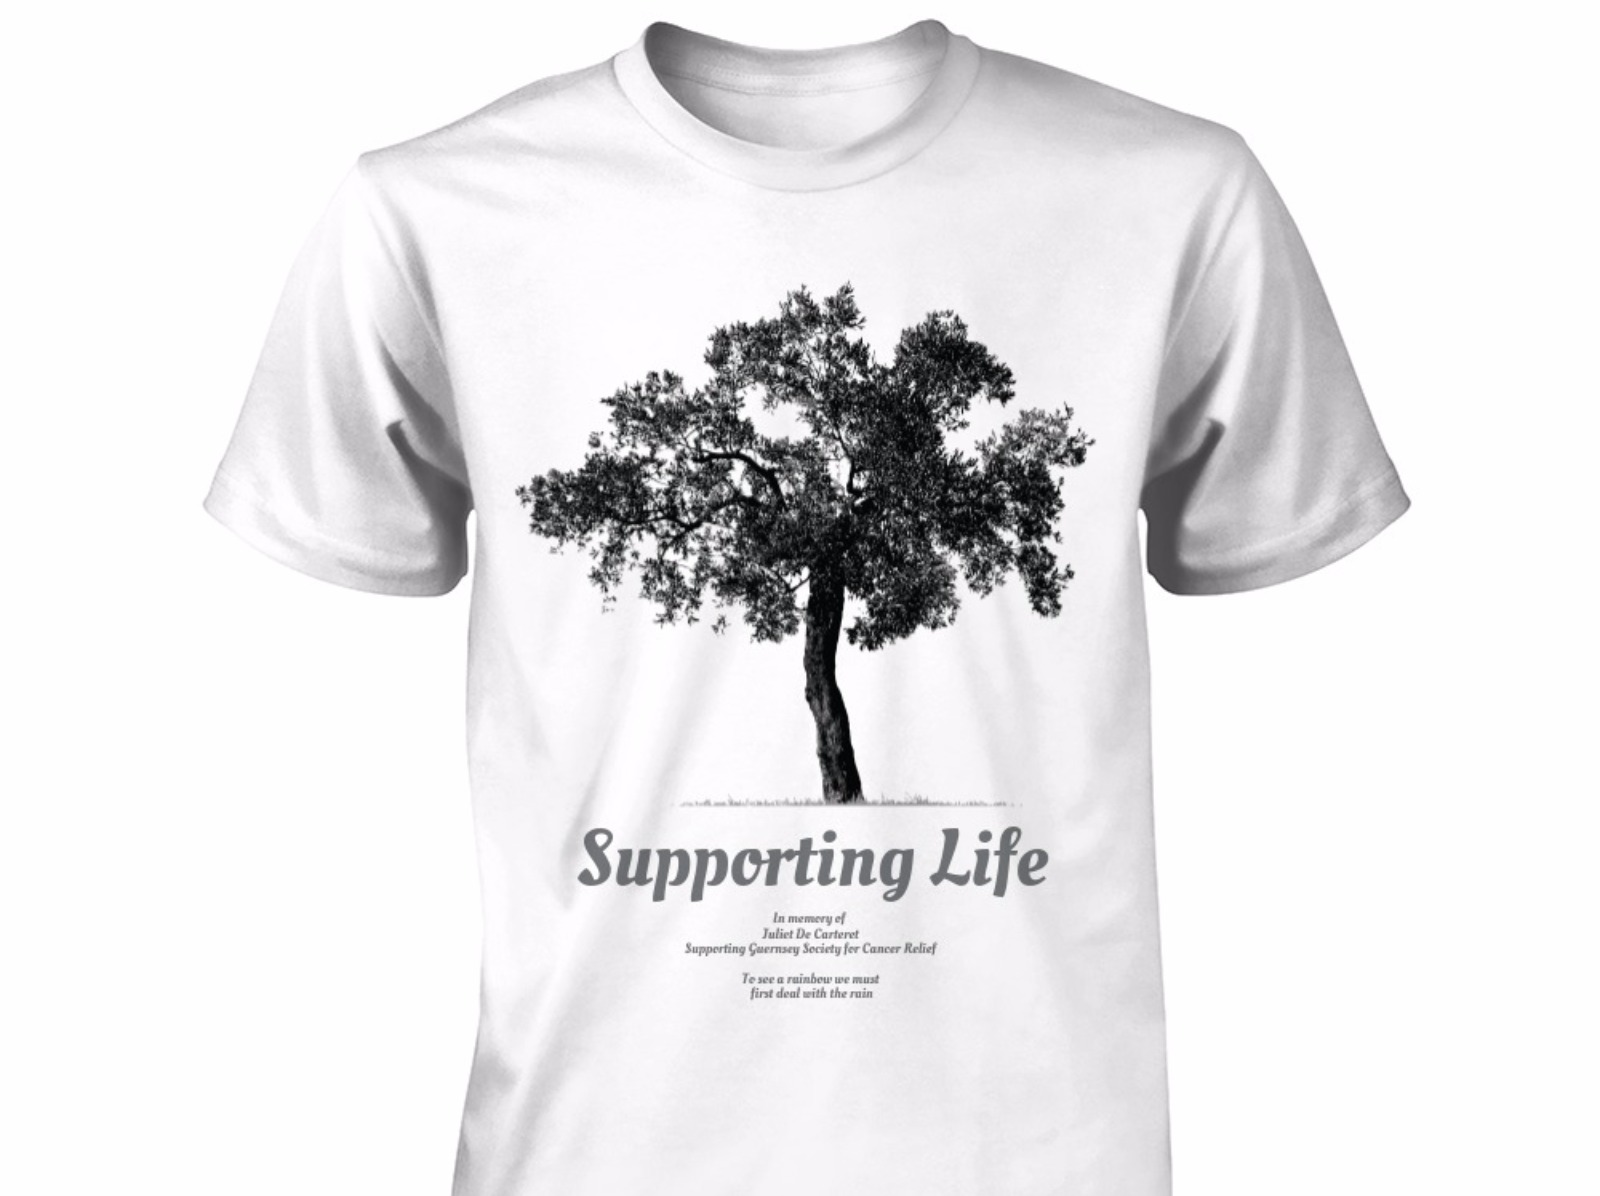 Islander designs t shirts to support cancer charity for Charity printed t shirt